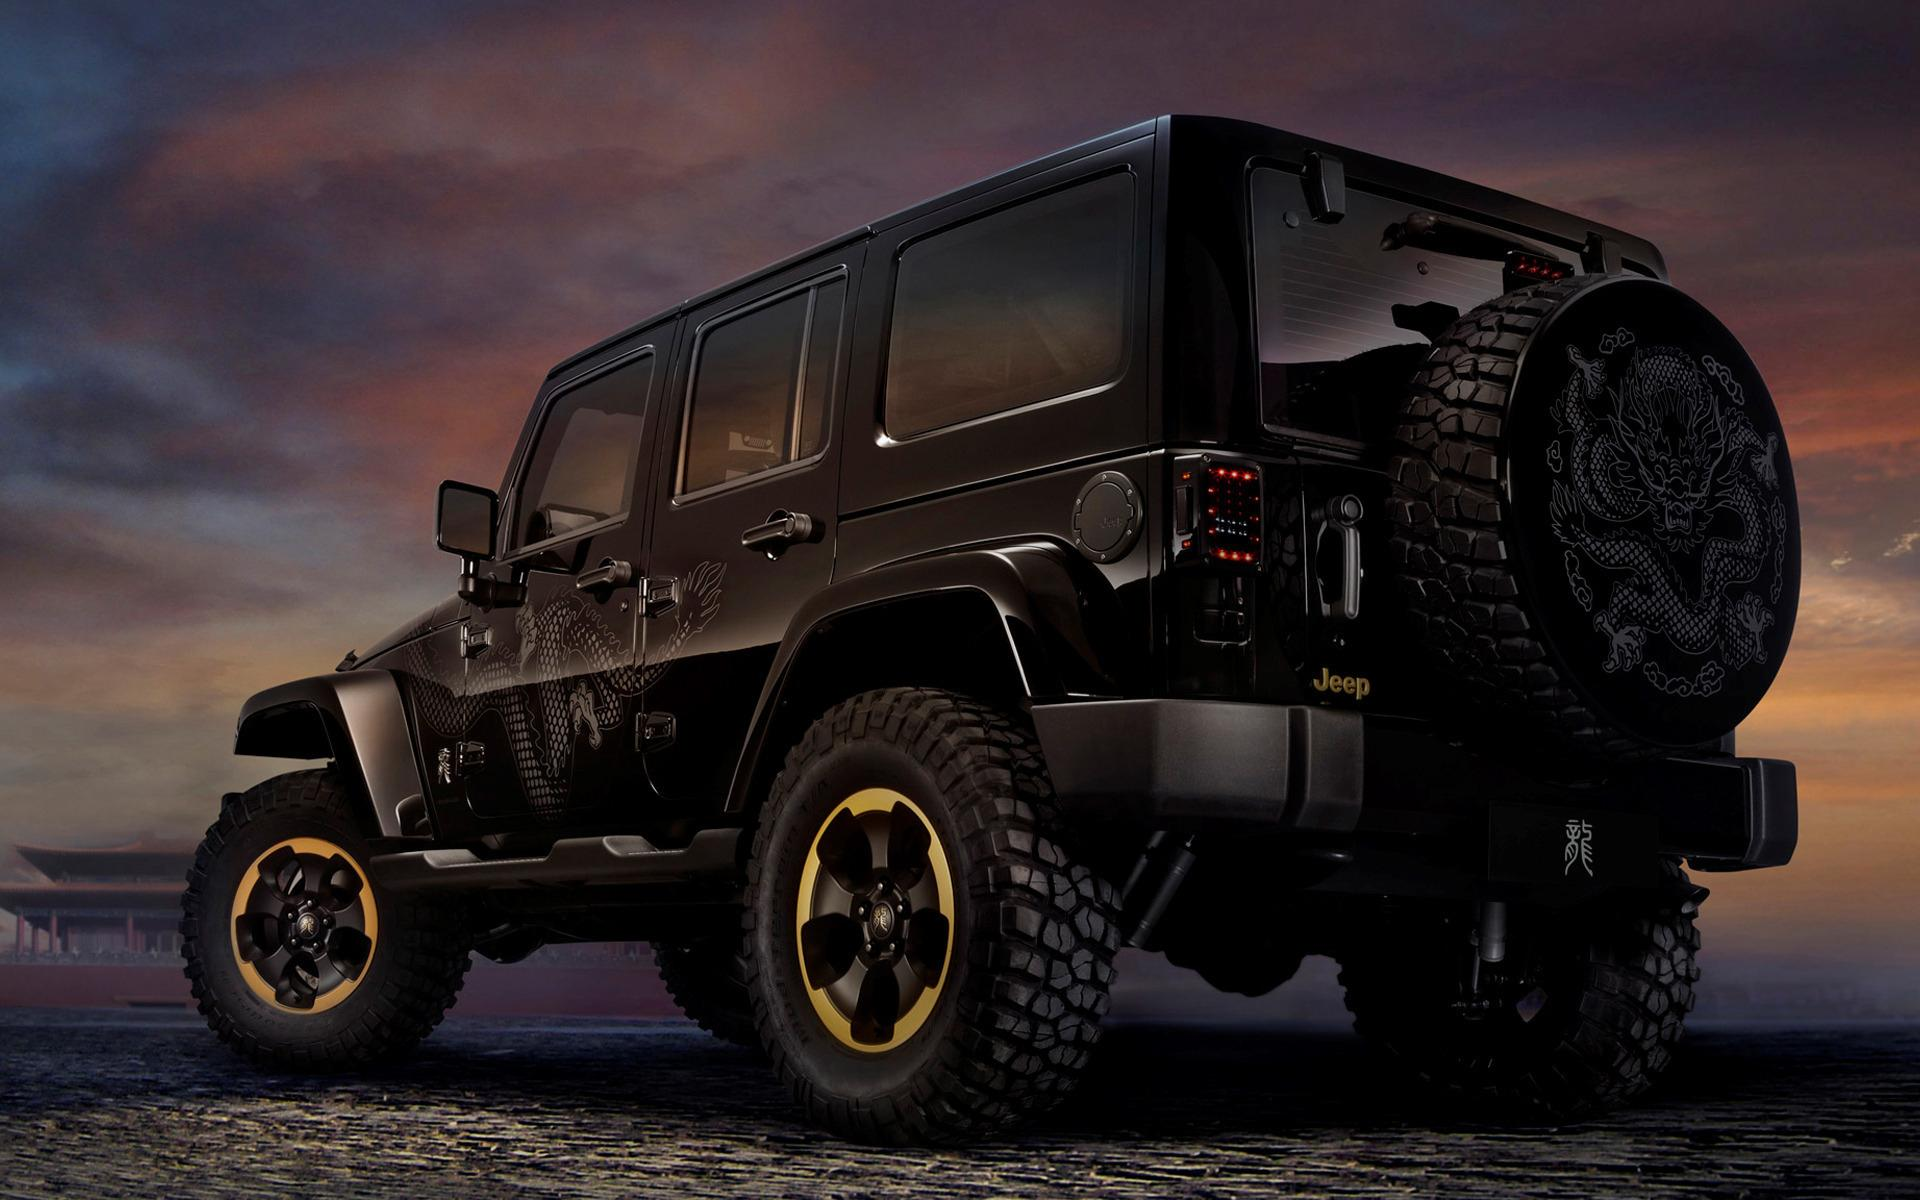 jeep wrangler-dragon design hd wallpaper | background image